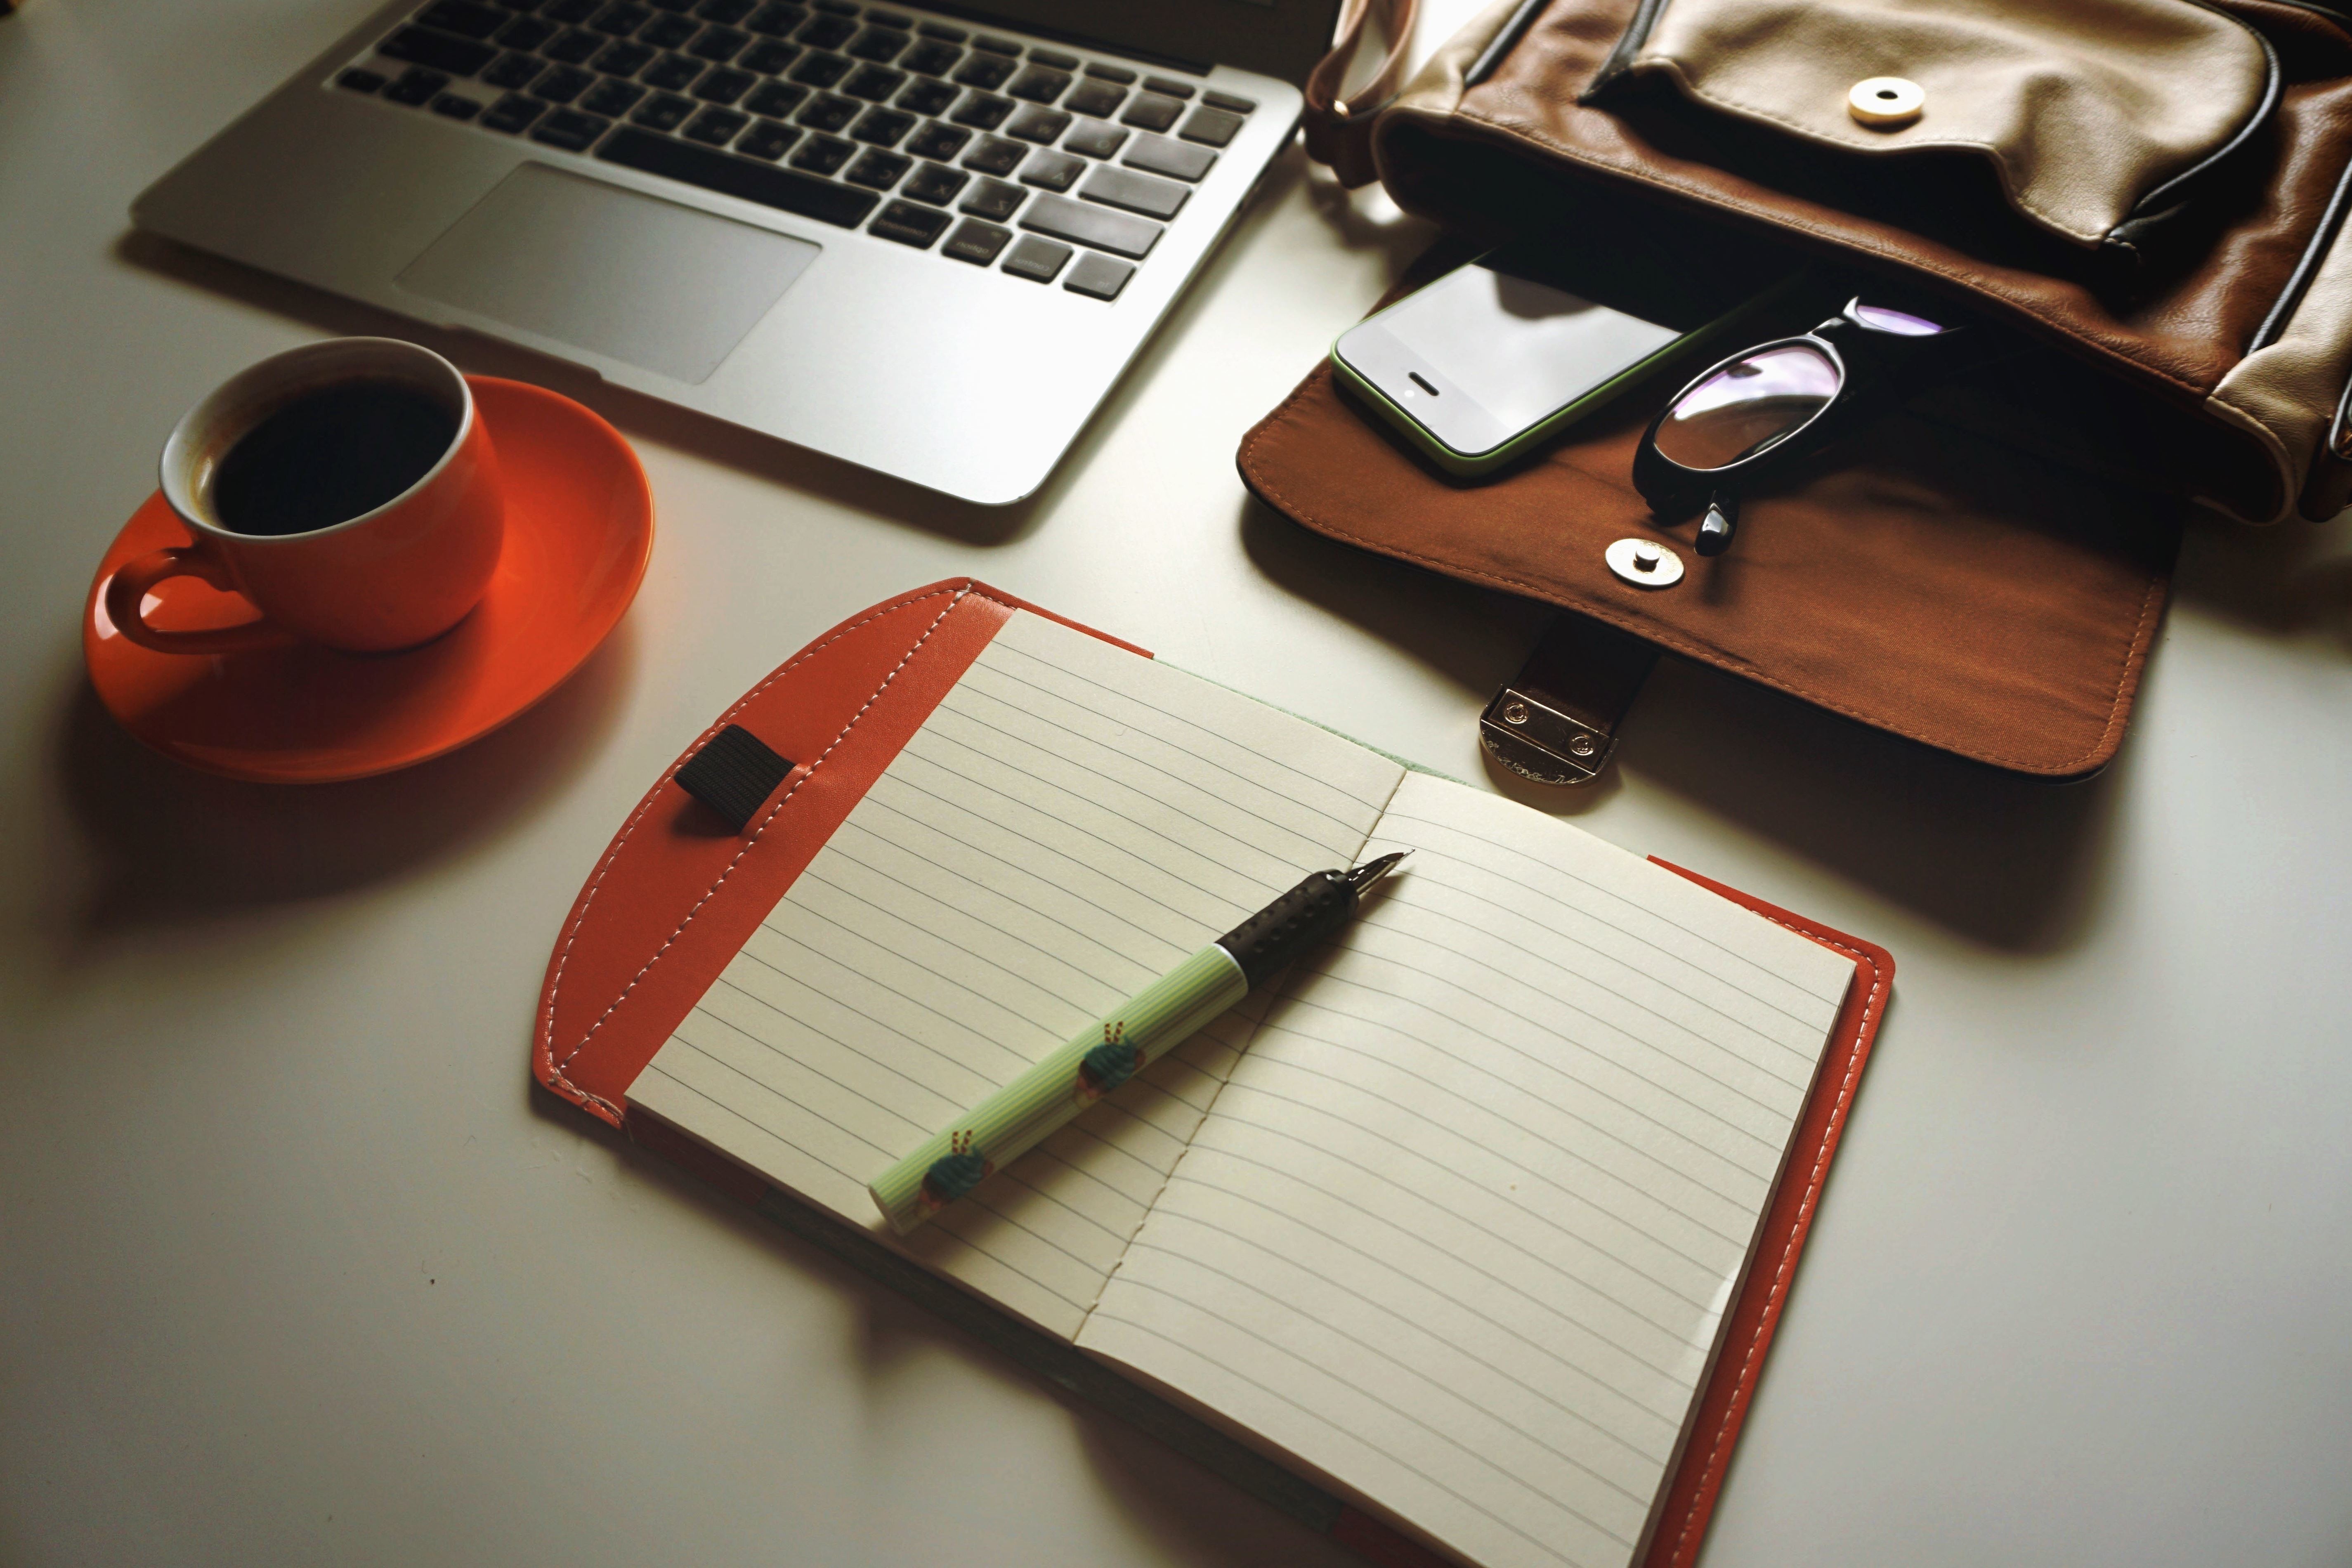 Free picture coffee laptop pencil notes eyeglasses